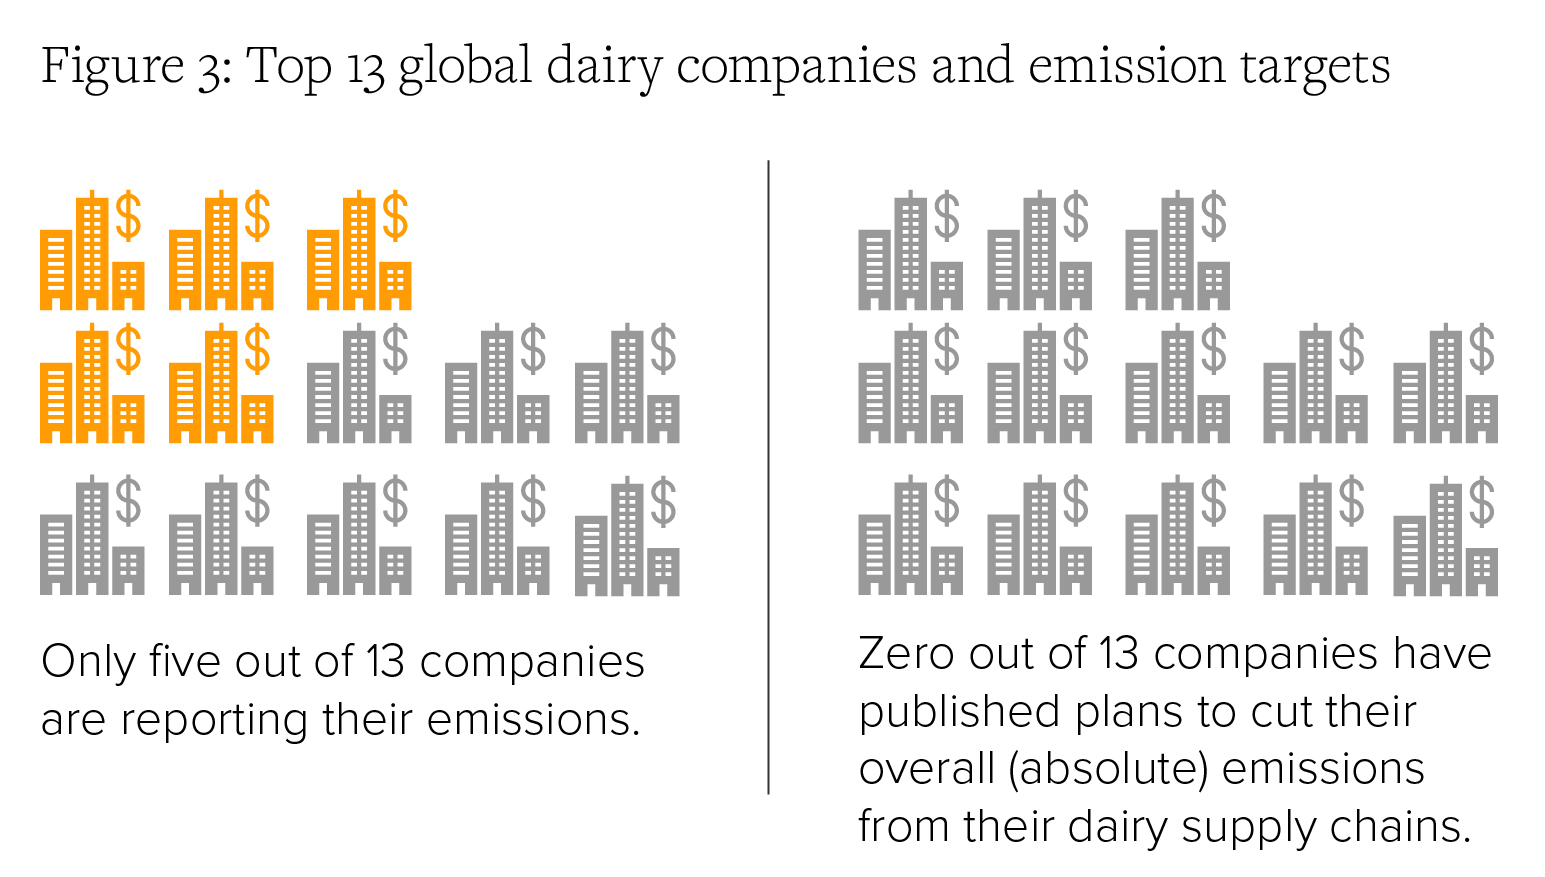 Figure 3: Top 13 global dairy companies and emission targets